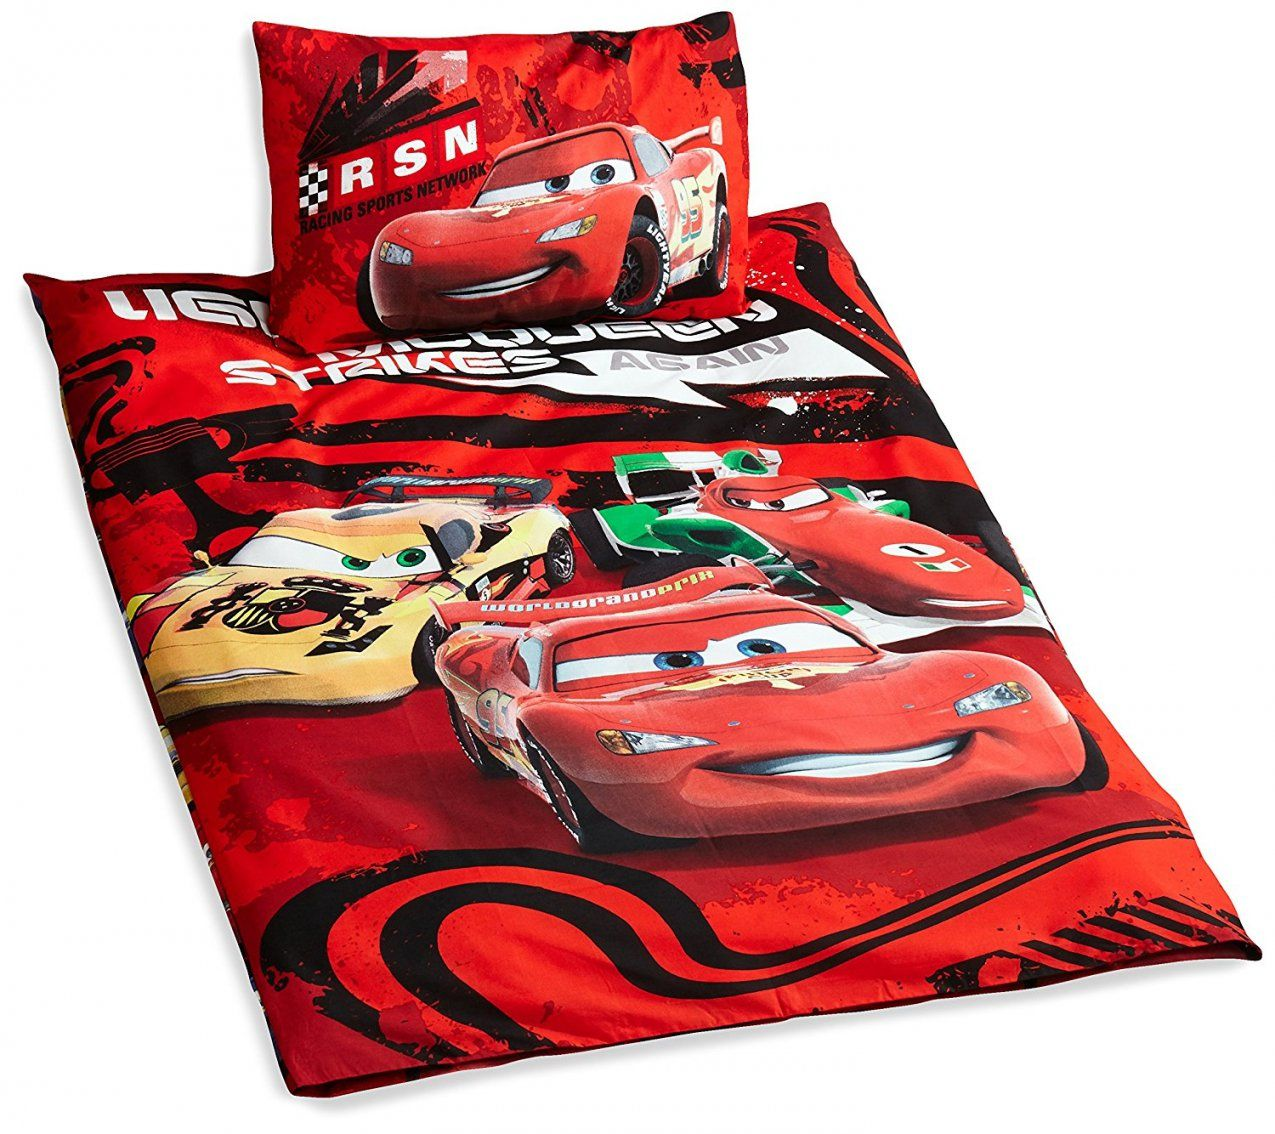 Disney Cars Bettwaesche Sets  Dibinekadar Decoration von Bettwäsche Cars 135X200 Bild